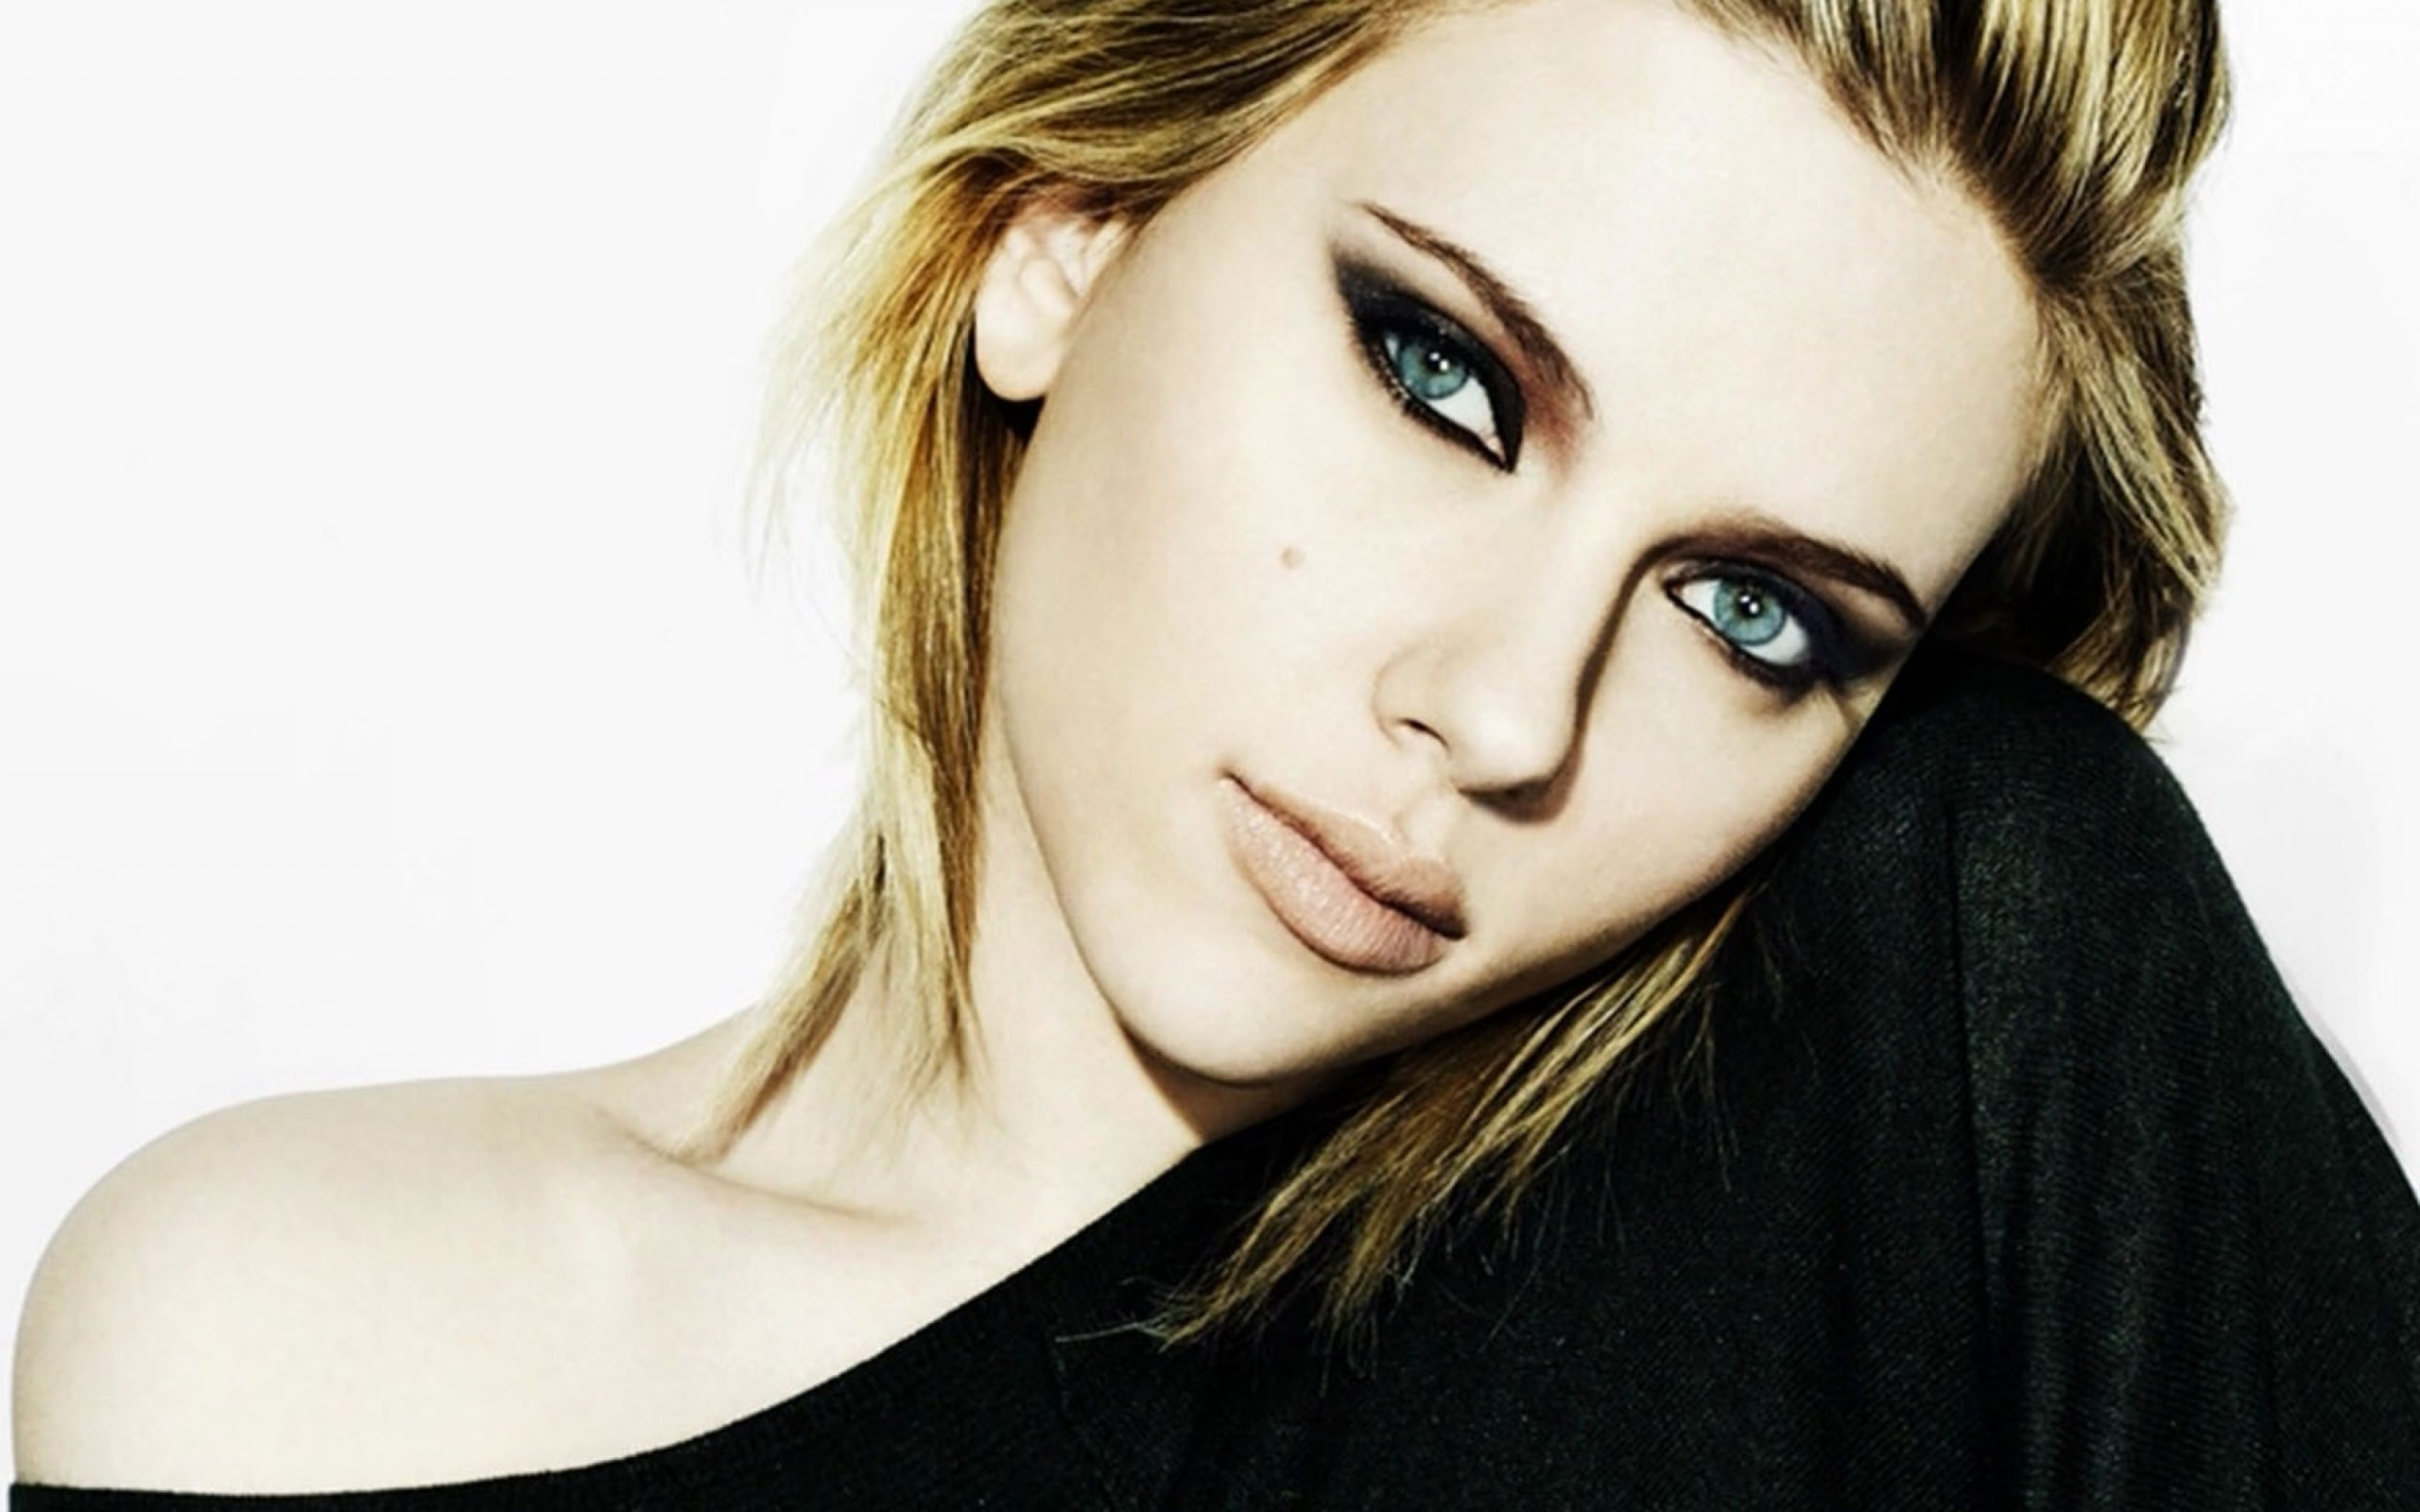 Scarlett Johansson wallpaper - Scarlett Johansson Net Worth, Awards, Movies and Private Life, Pictures and Wallpapers